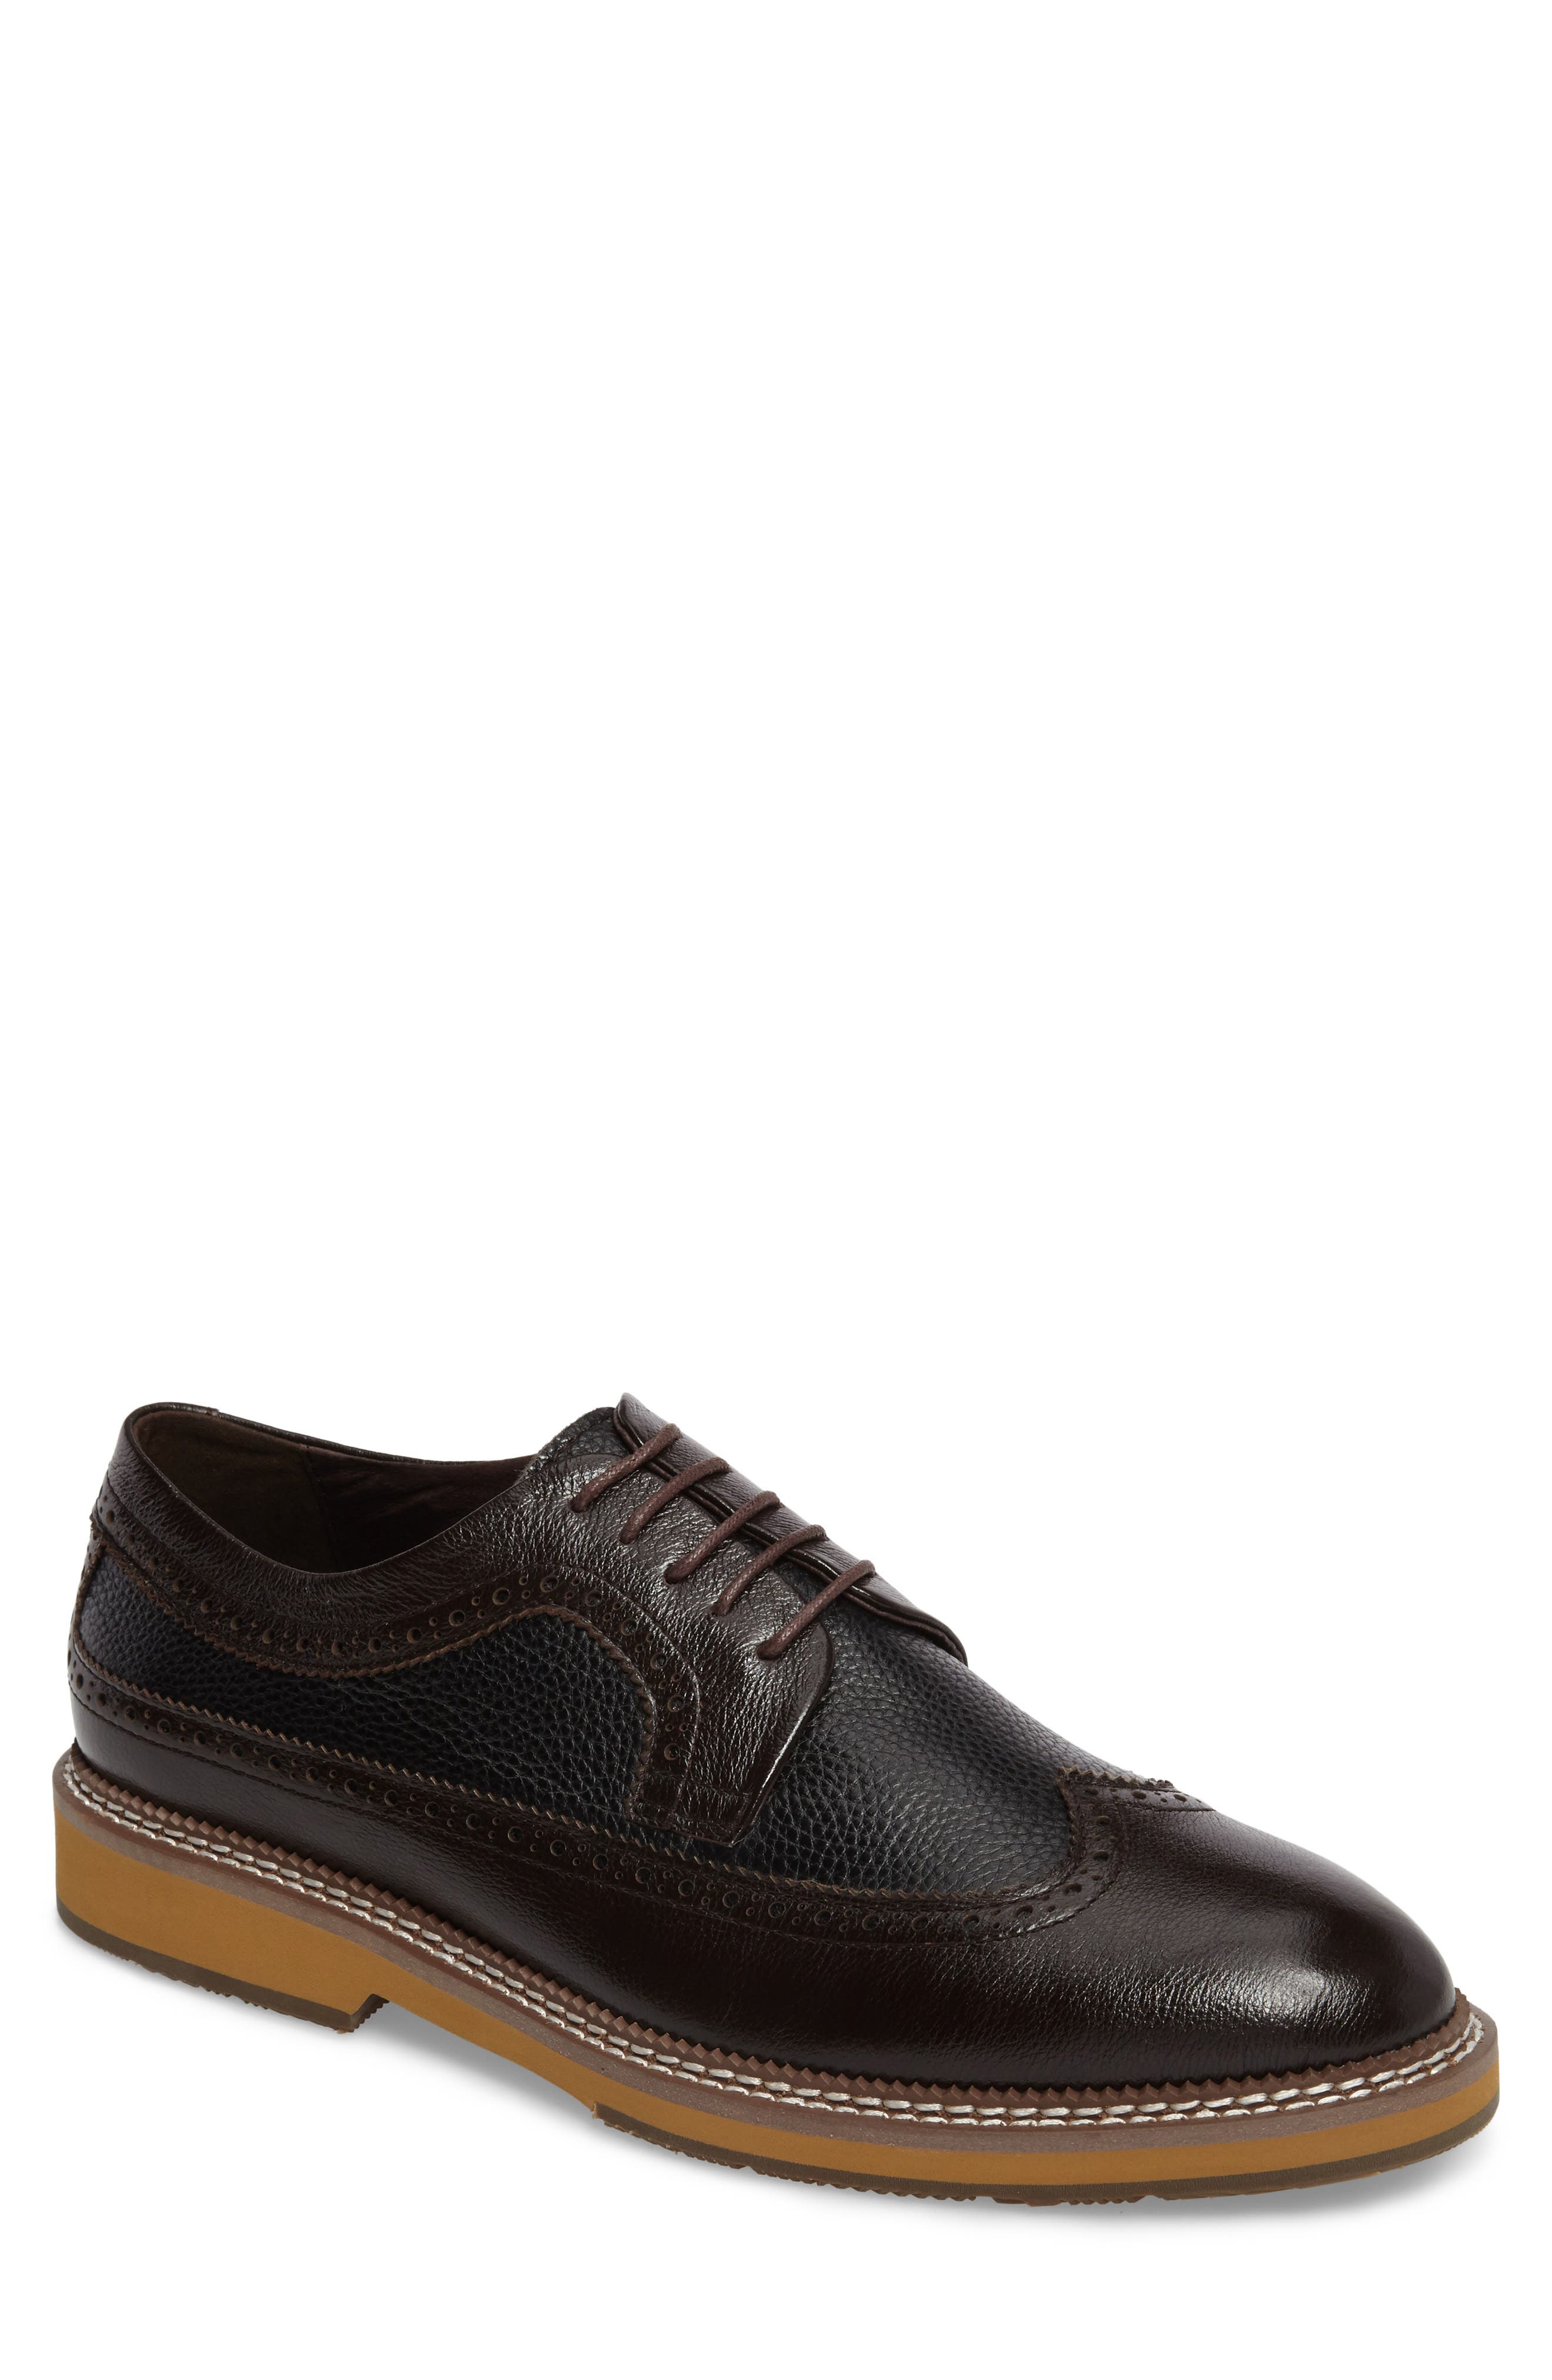 Fouquet Wingtip Derby,                         Main,                         color, Brown Leather